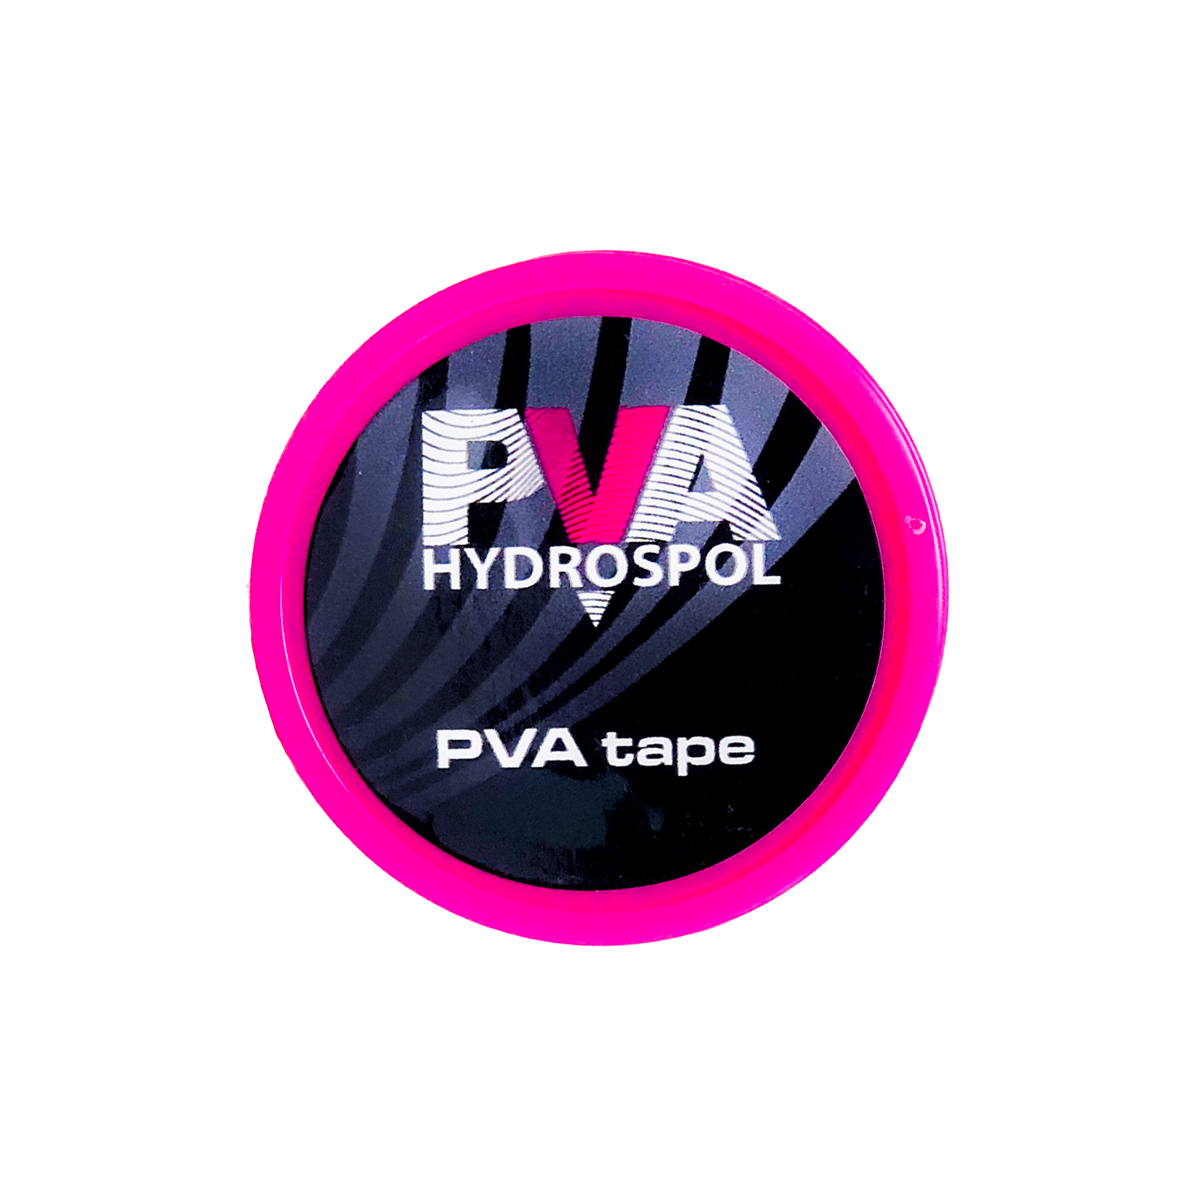 PVA HYDROSPOL  pva tape extra strong 20 meter